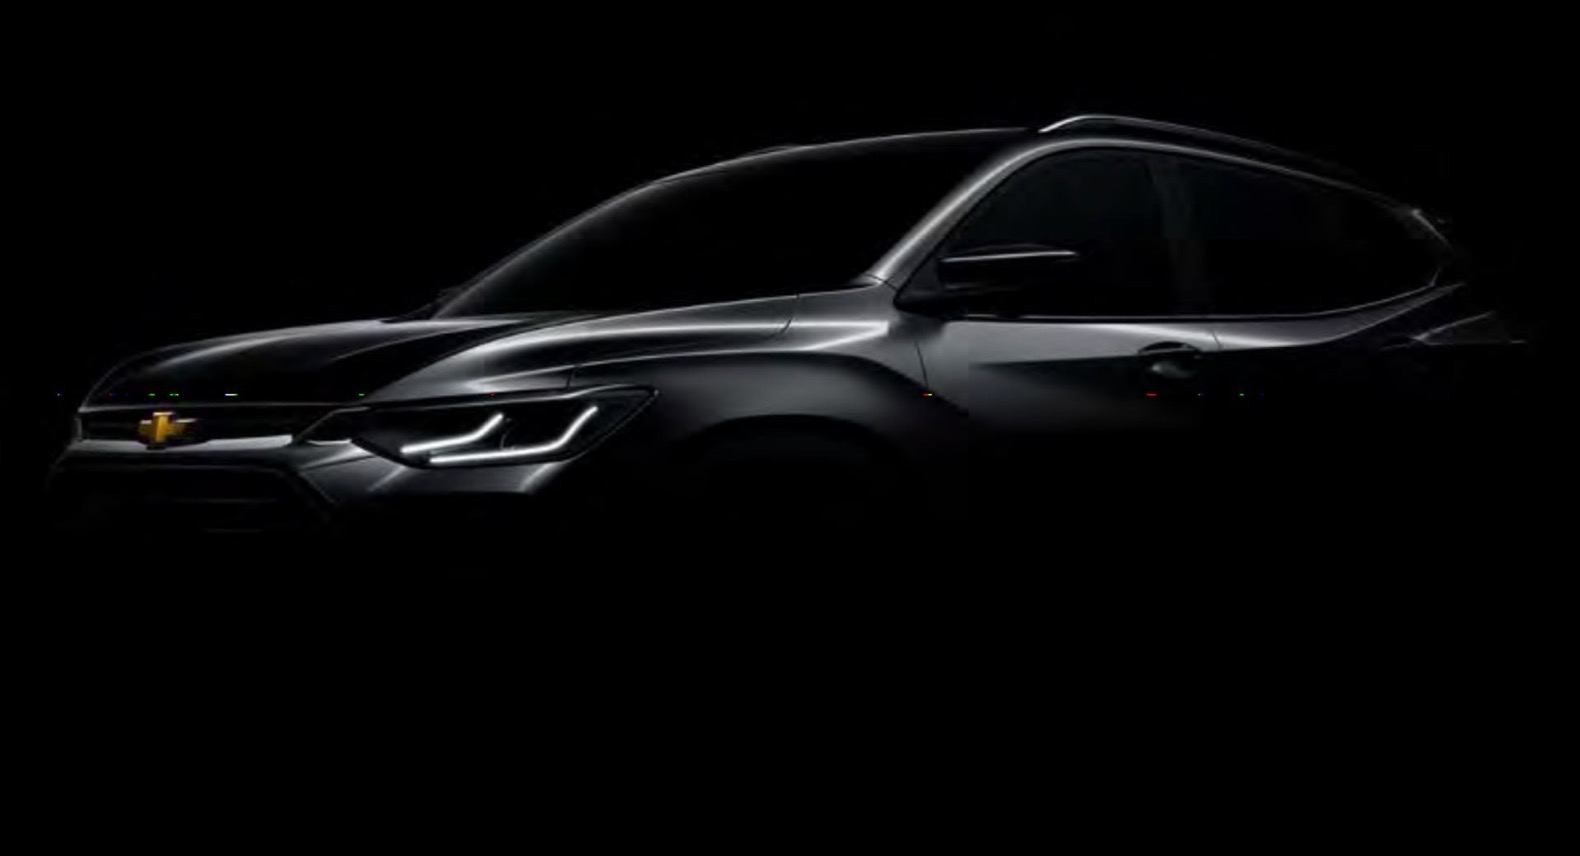 2020 Chevy Trax teased | The Torque Report